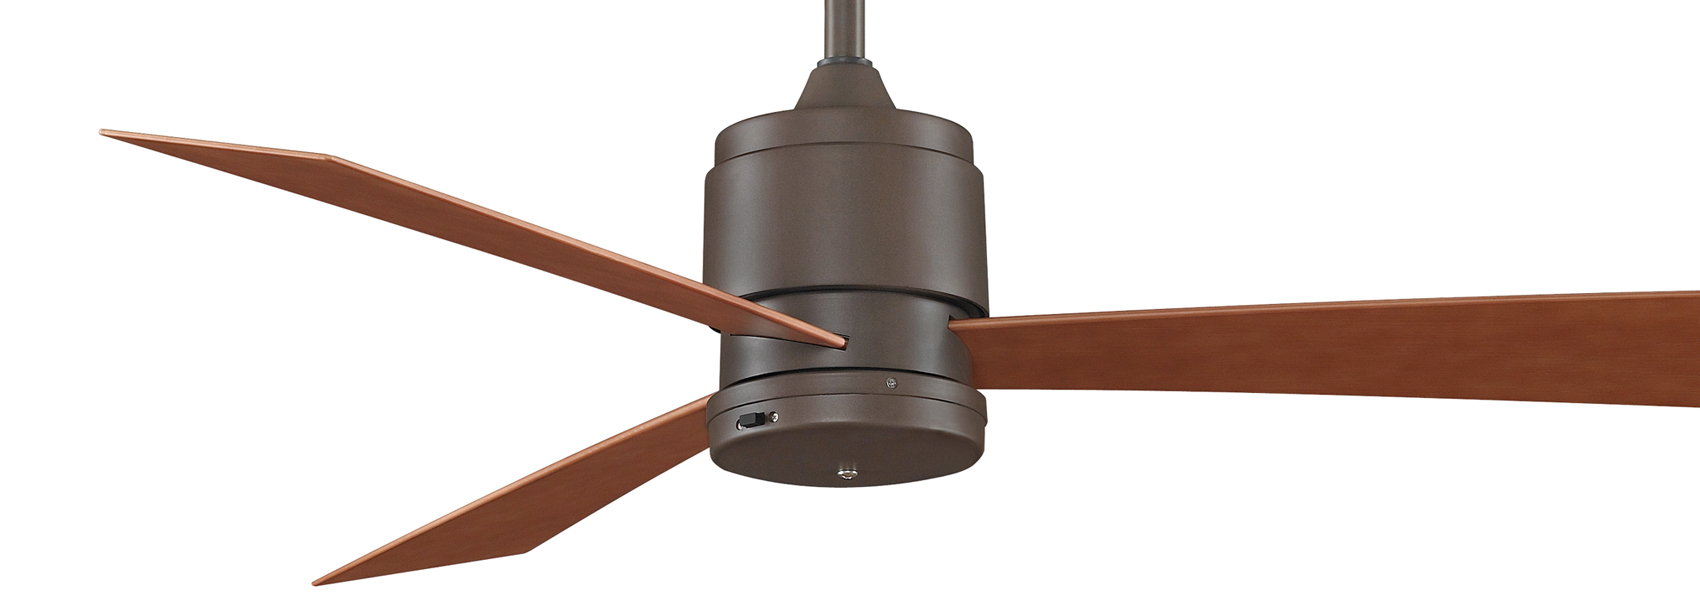 energy saving fans alexandria go lights ceiling fan sydney - Ceiling Fans